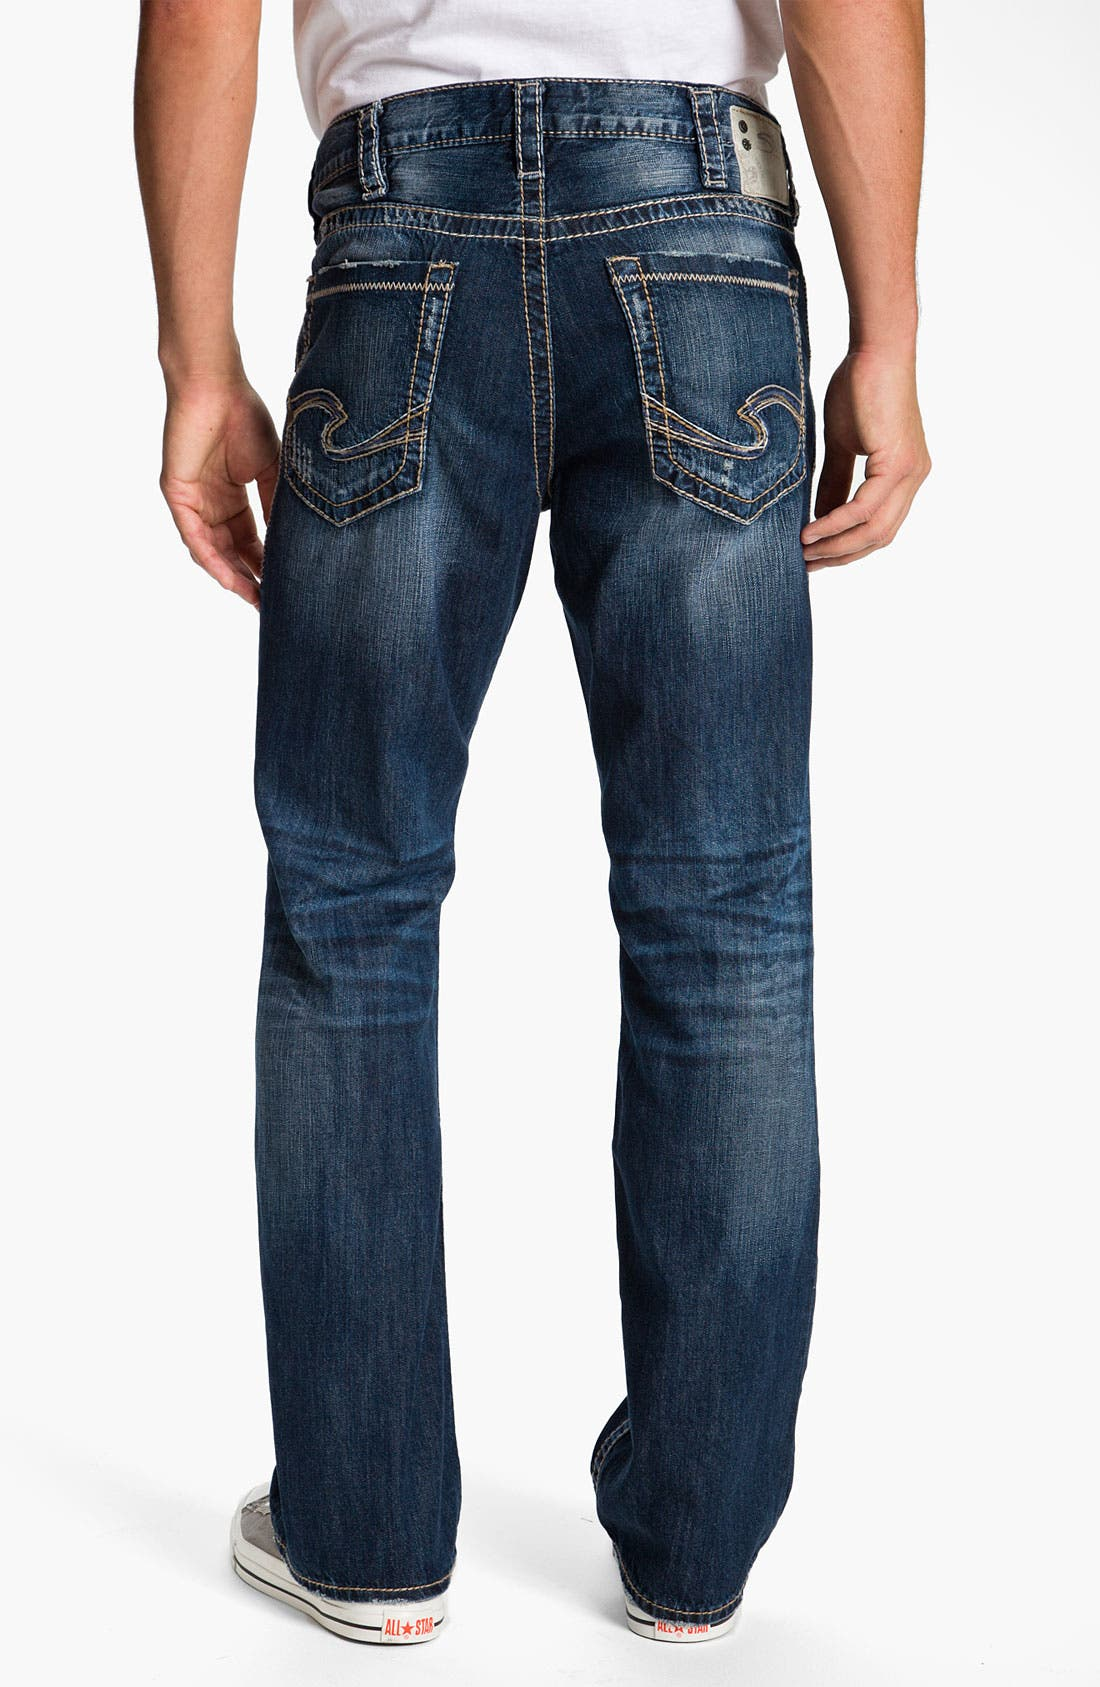 Main Image - Silver Jeans Co. 'Grayson' Bootcut Jeans (Indigo)